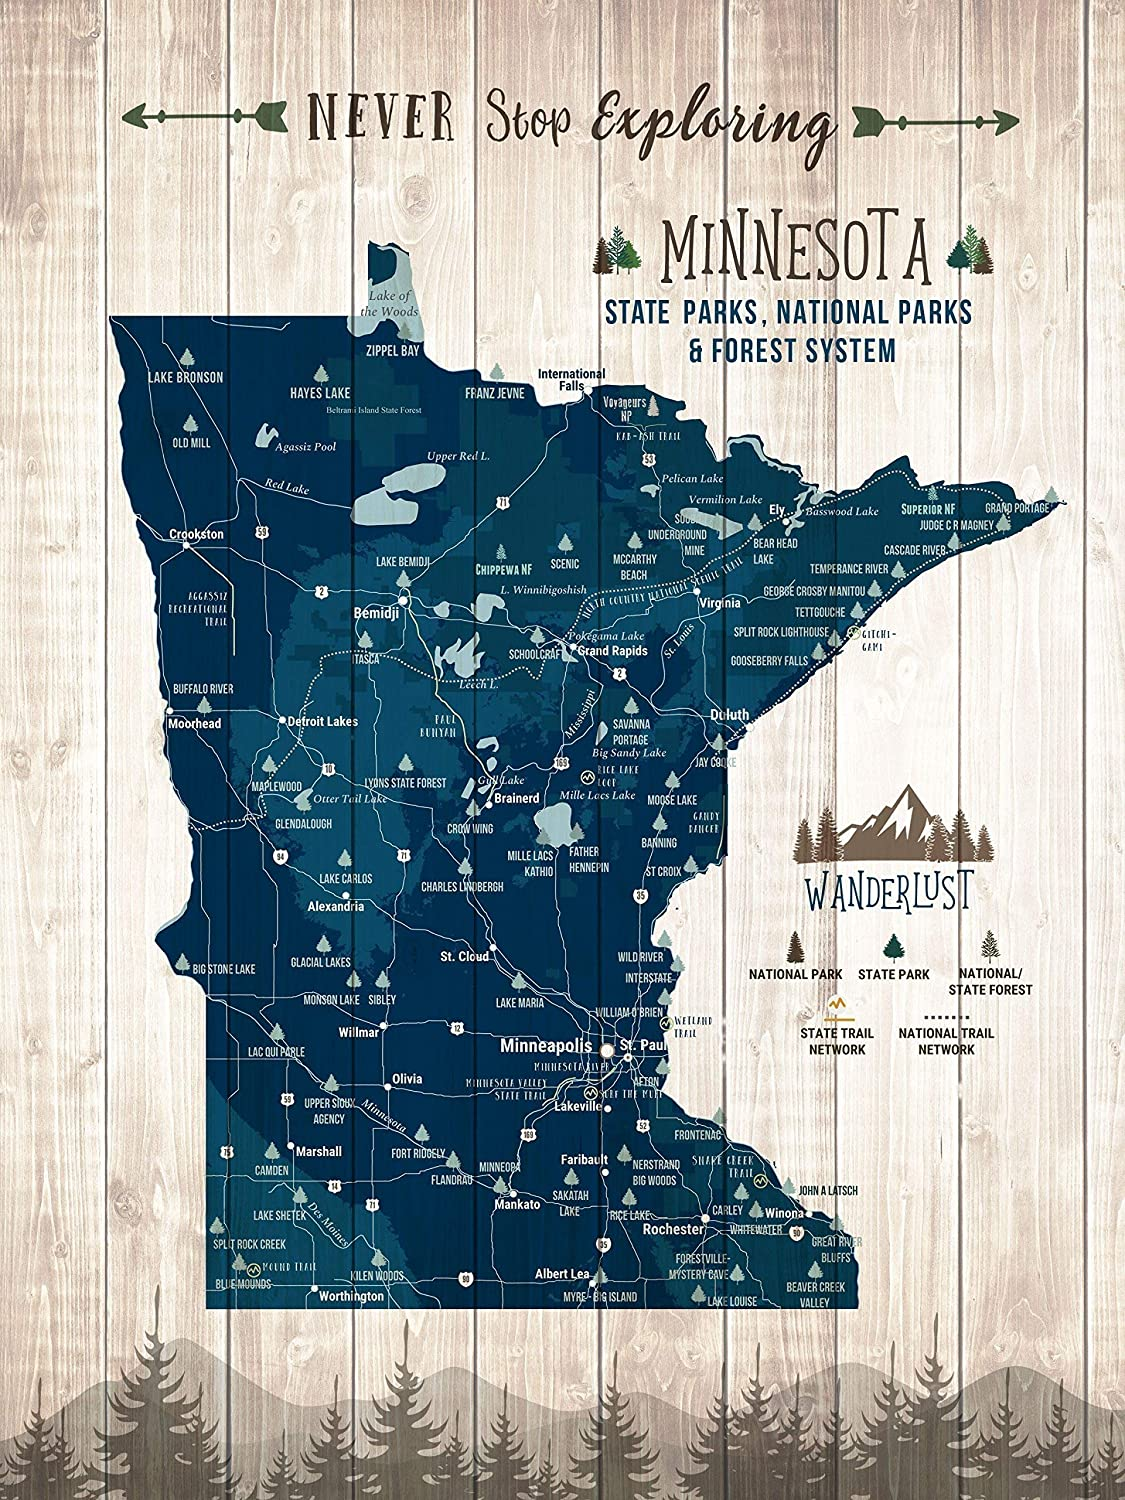 Minnesota Map, Minnesota State Parks Poster, State Map, Push Pin Map, on olympic national park map, food by state map, state birds map, badlands national park map, cuyahoga valley national park map, gates of the arctic national park map, national parks in each state, national map of usa, monuments by state map, new york state national parks map, casinos by state map, politics by state map, carlsbad caverns national park map, concealed carry by state map, religion by state map, katmai national park and preserve map, national wildlife refuges by state map, superfund sites by state map, military bases by state map, weather by state map,